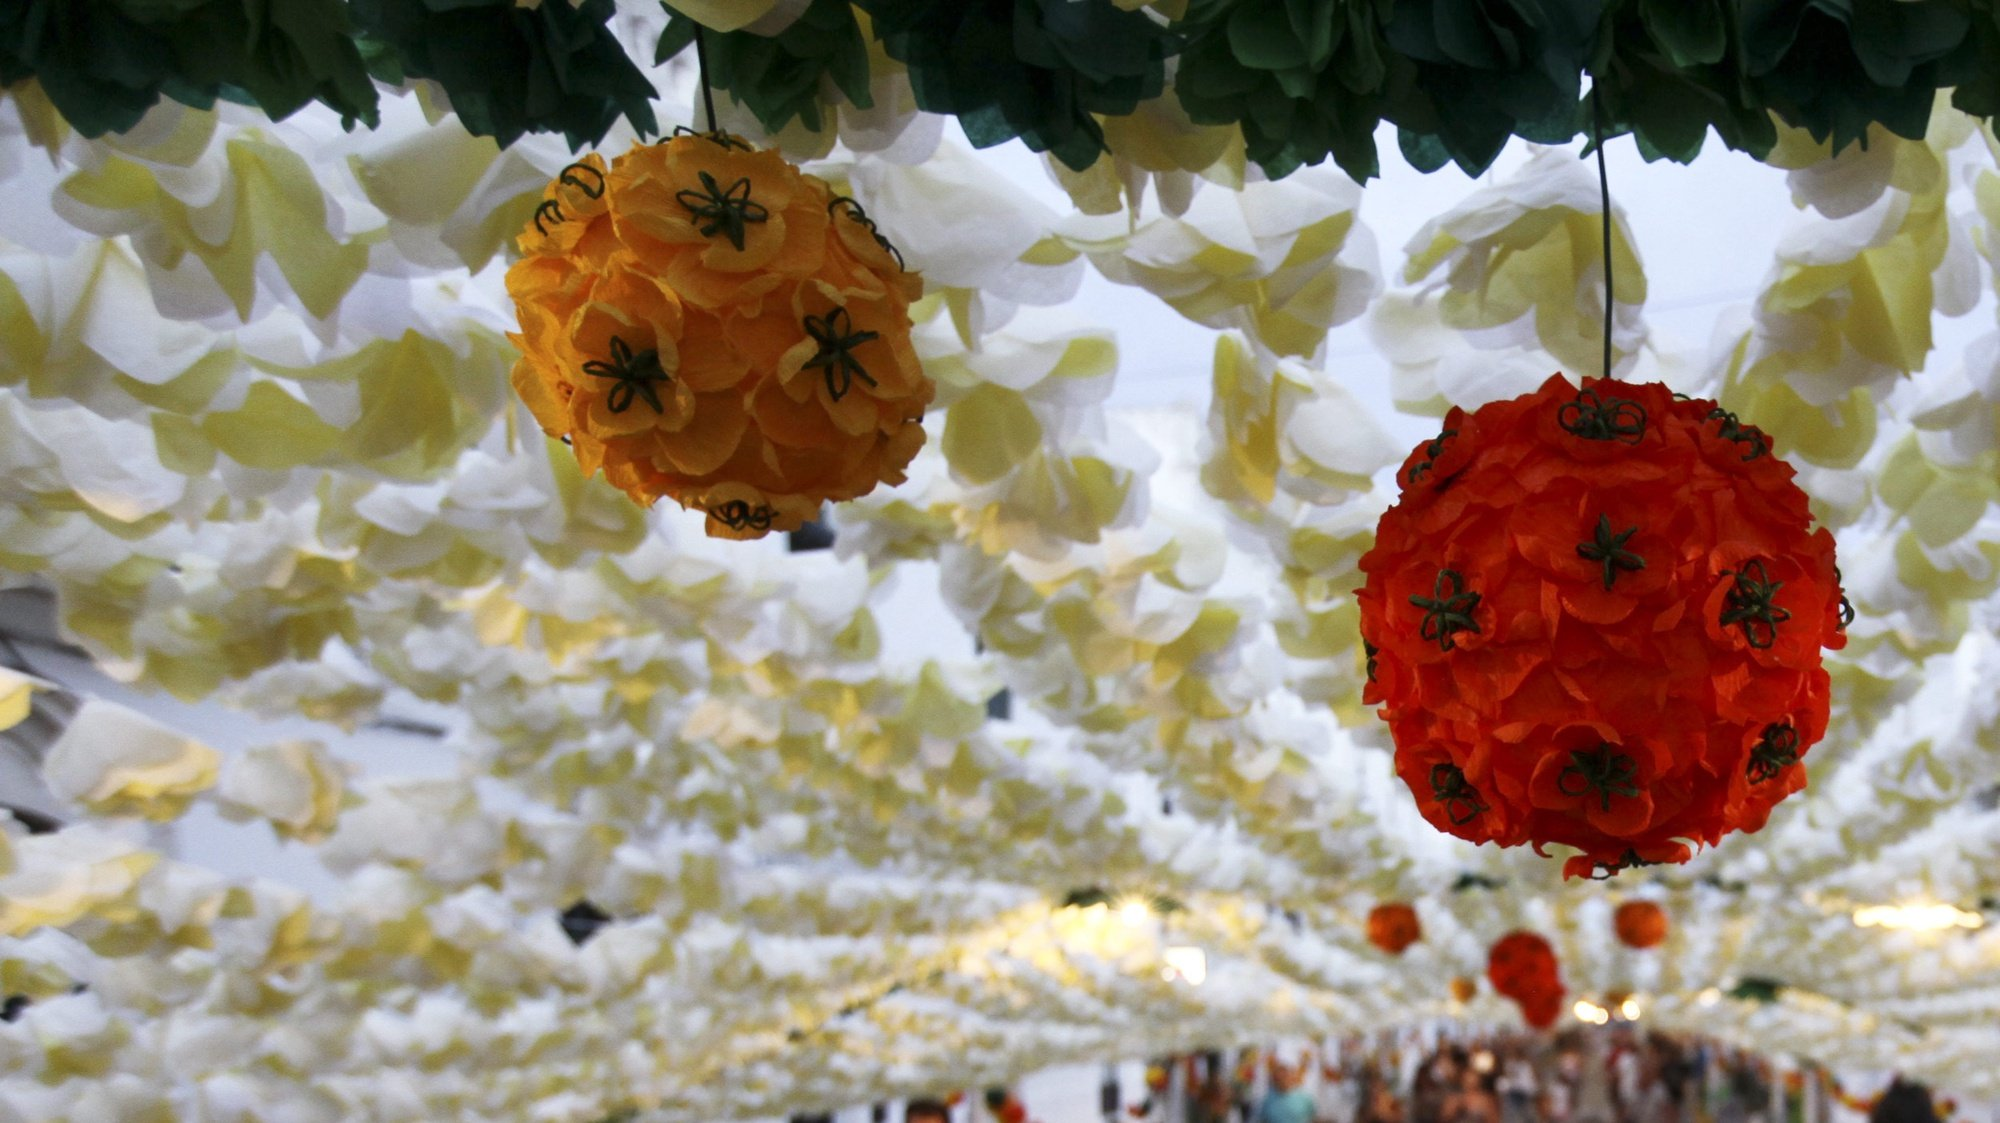 epa04895426 Visitors walk by the street covered with paper flowers during the Festas do Povo (People Fest) in Campo Maior, 180 Km from Lisbon, Portugal, 23 August 2015. The festival consist of the decoration of the streets of Campo Maior, especially the Old Town, with paper flowers and other objects in card and paper, made by the population. The latest Festas do Povo took place in 2011 and brought to the Alentejo town about one million people, and have been used nearly 30 tons materials and 7,500 volunteer people.  EPA/NUNO VEIGA